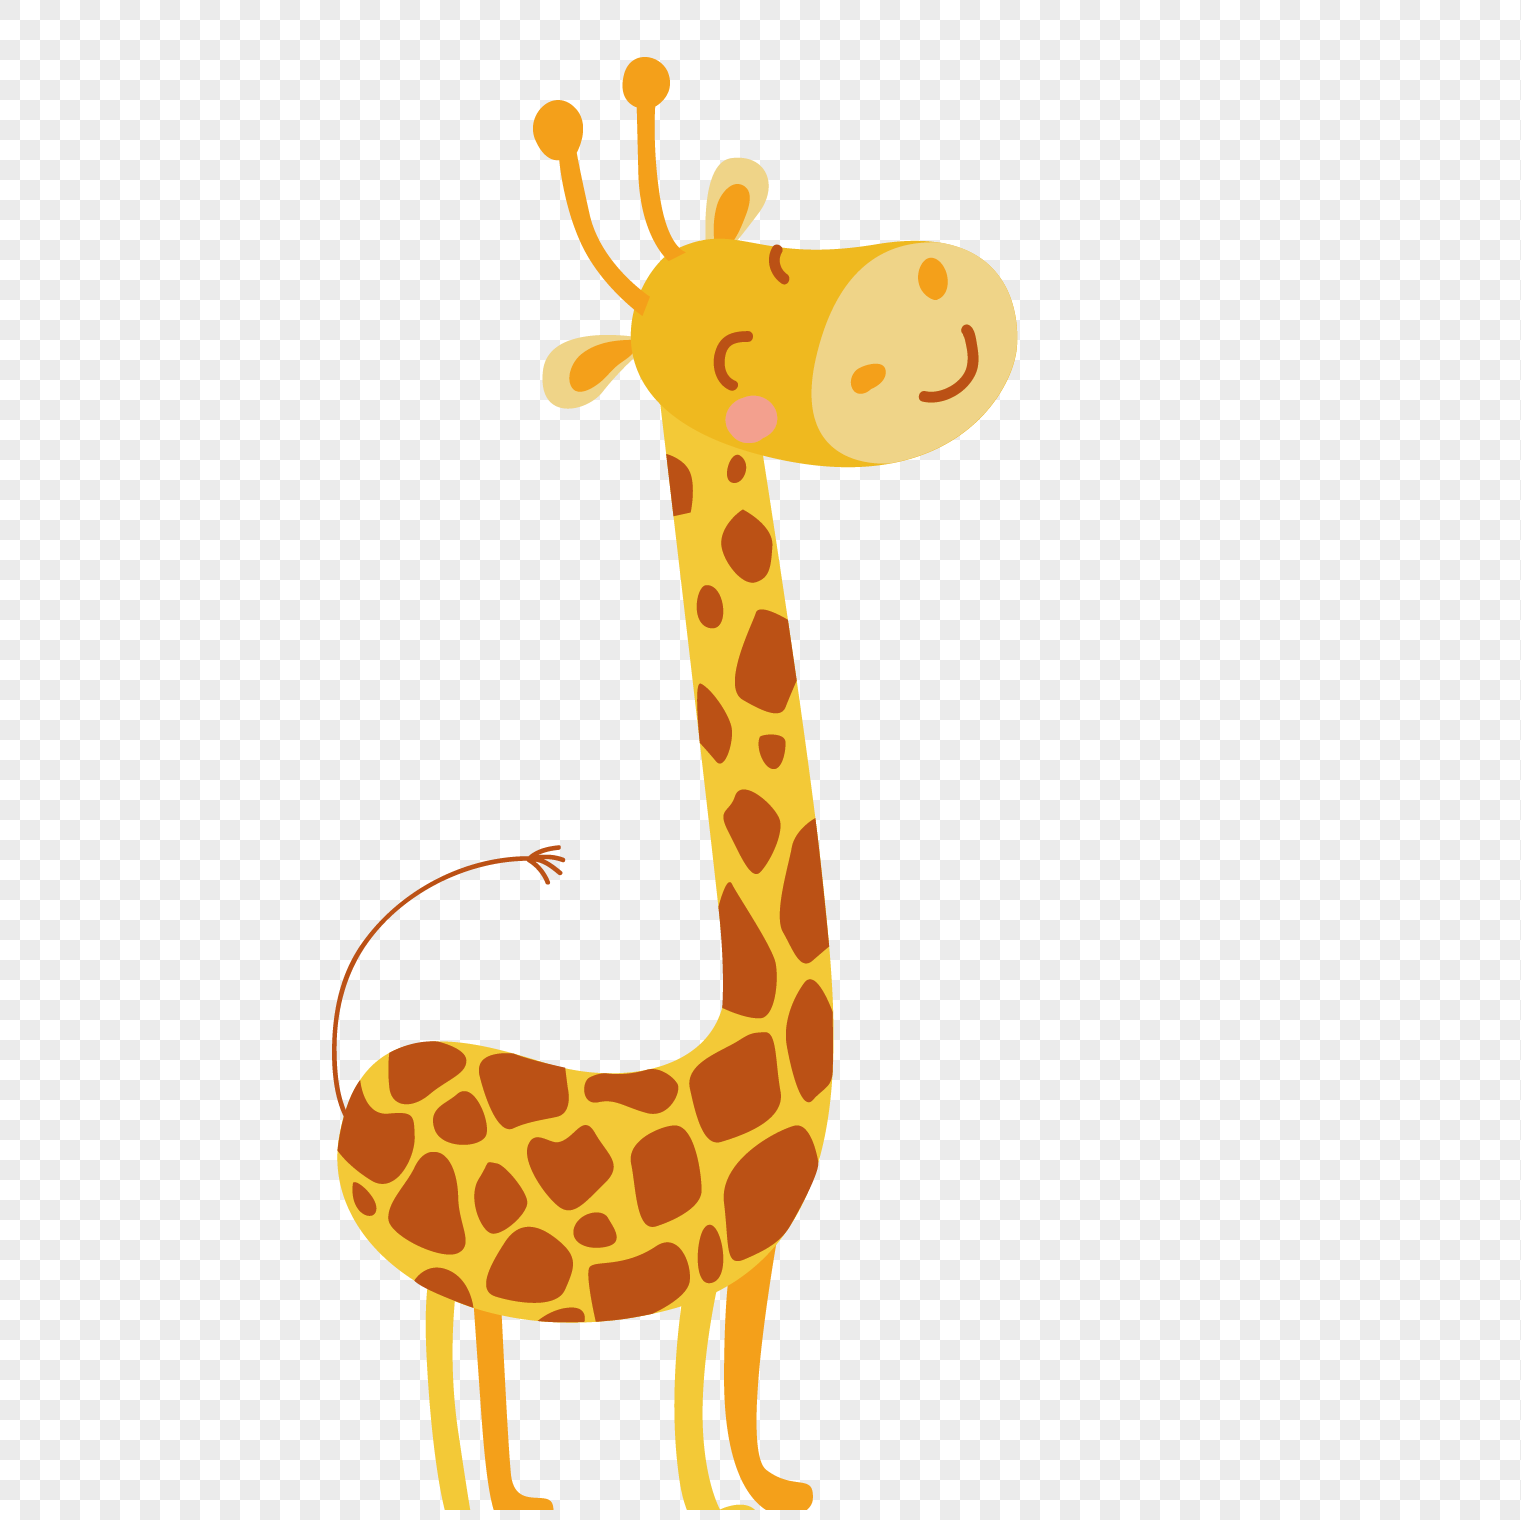 Cute giraffe cartoon png image_picture free download ...